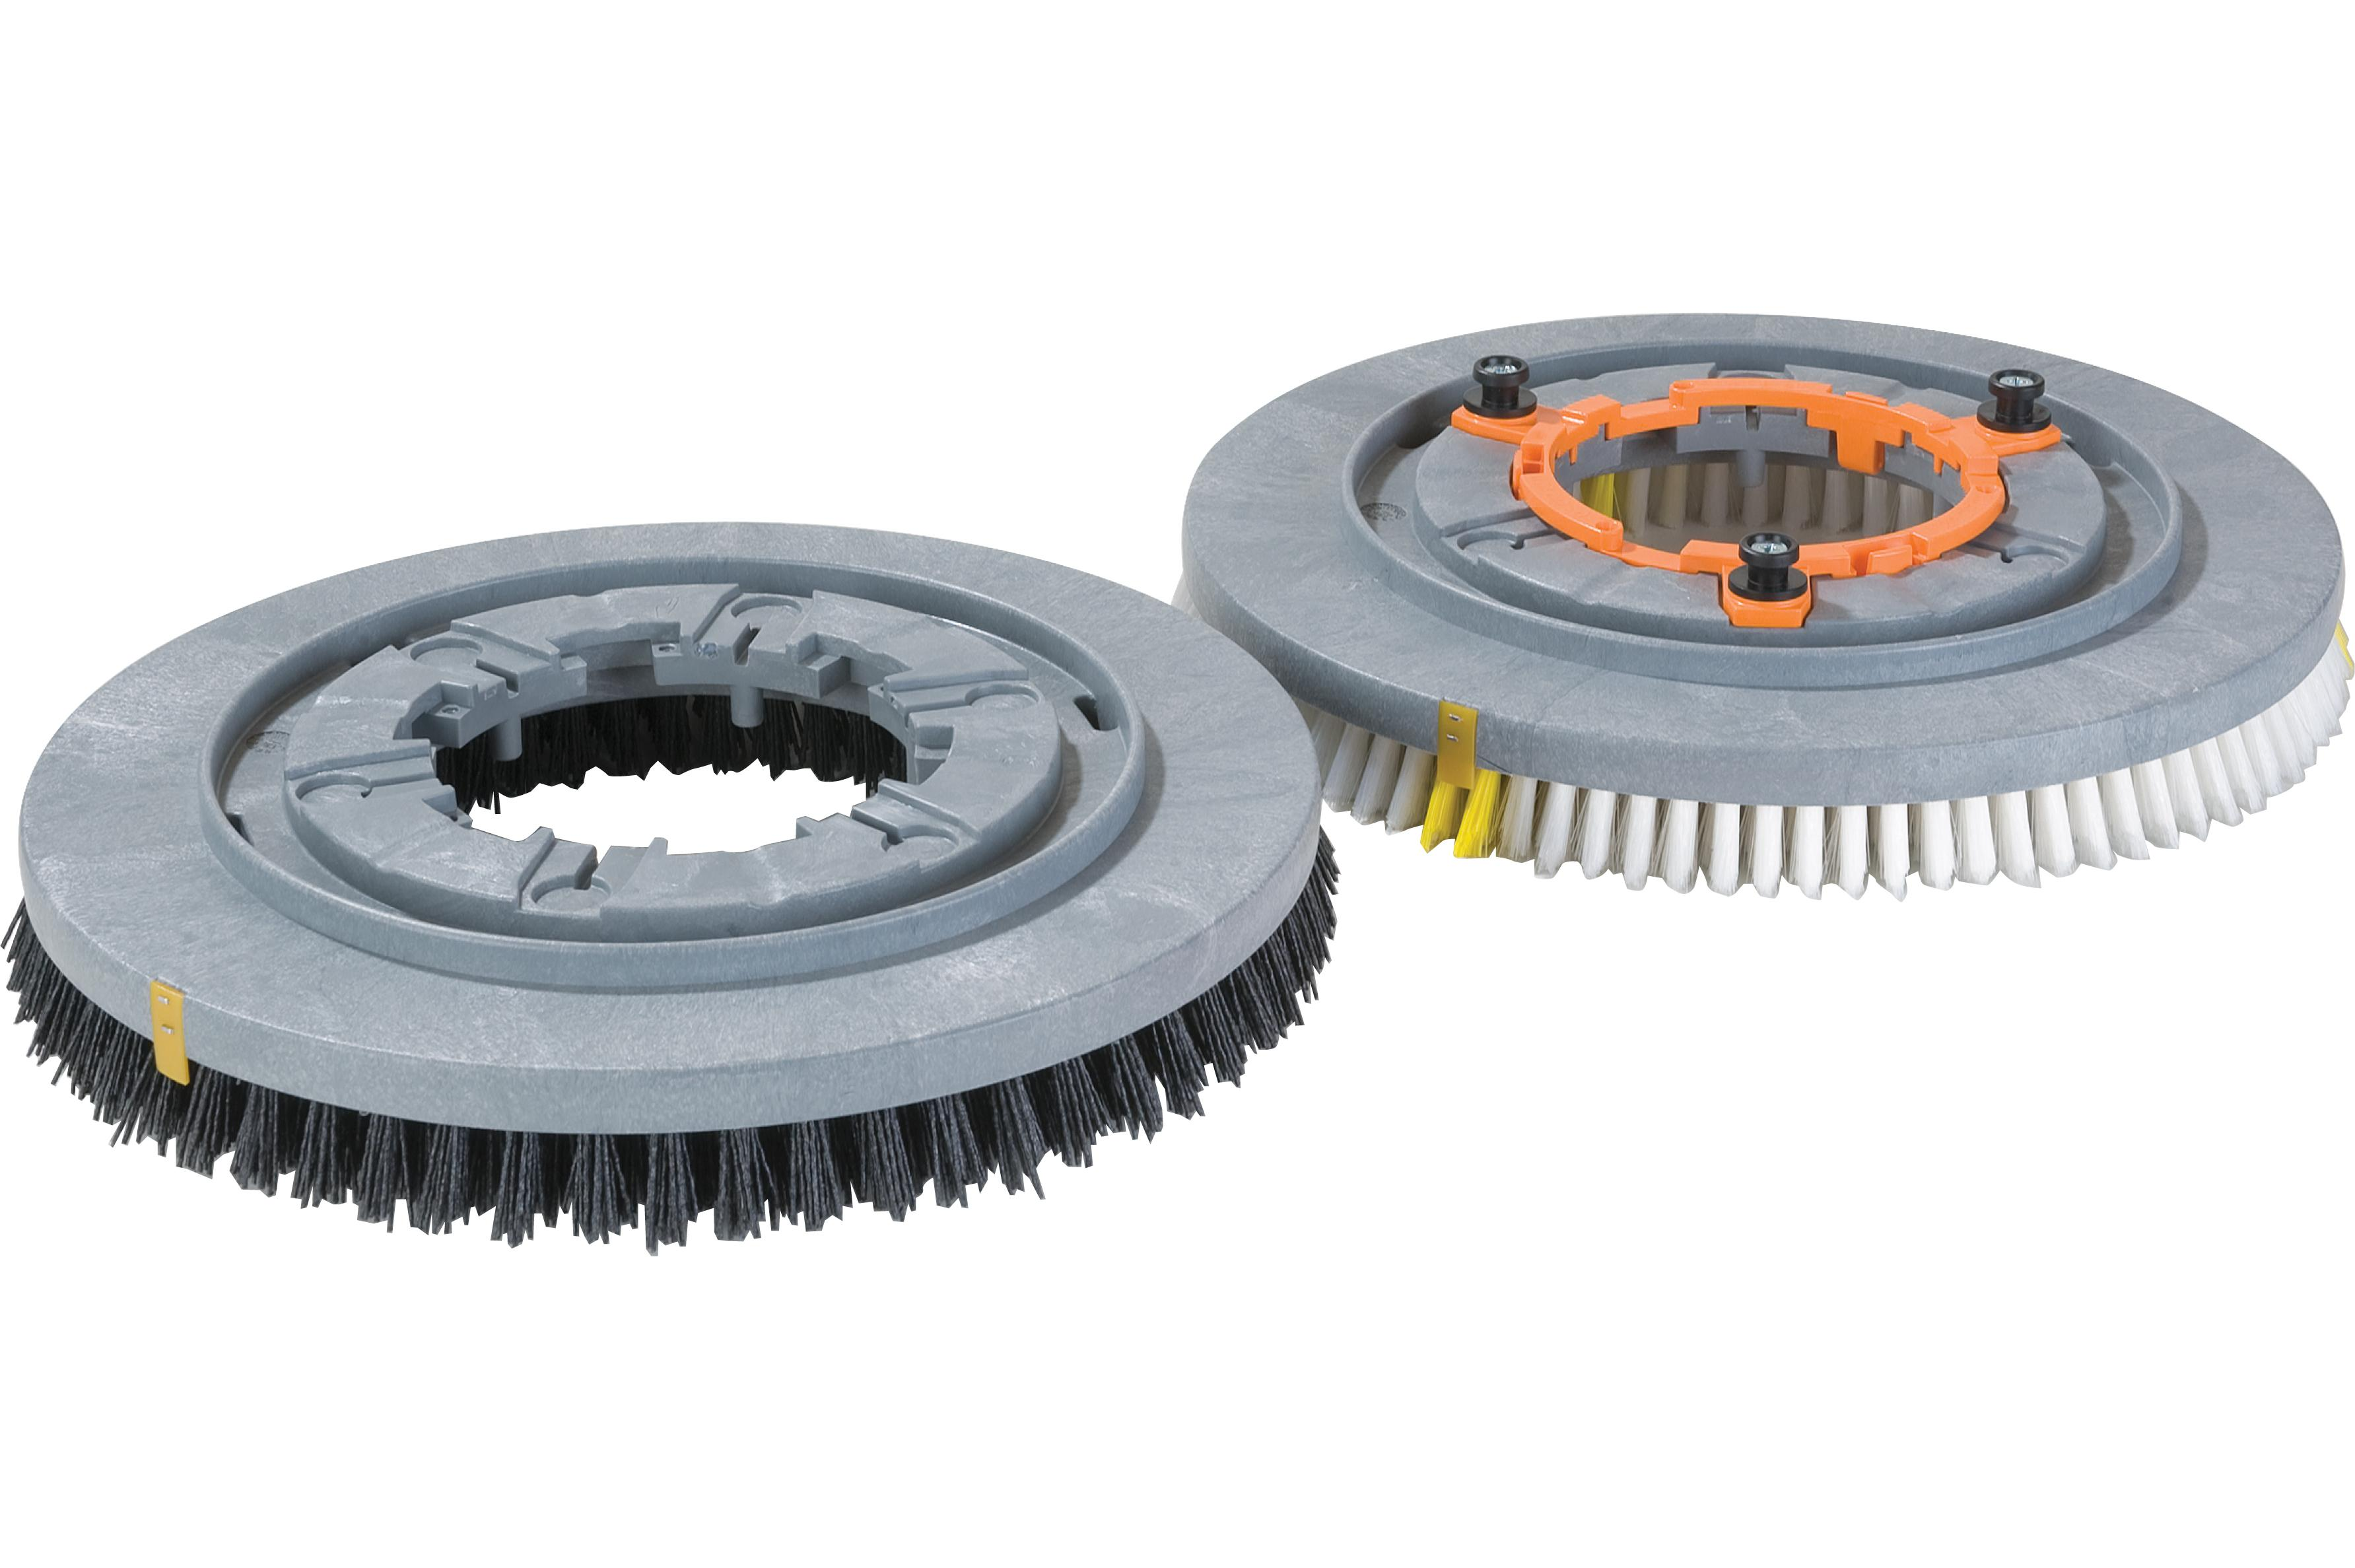 Group of Rotary Brushes and One Clutch Plate